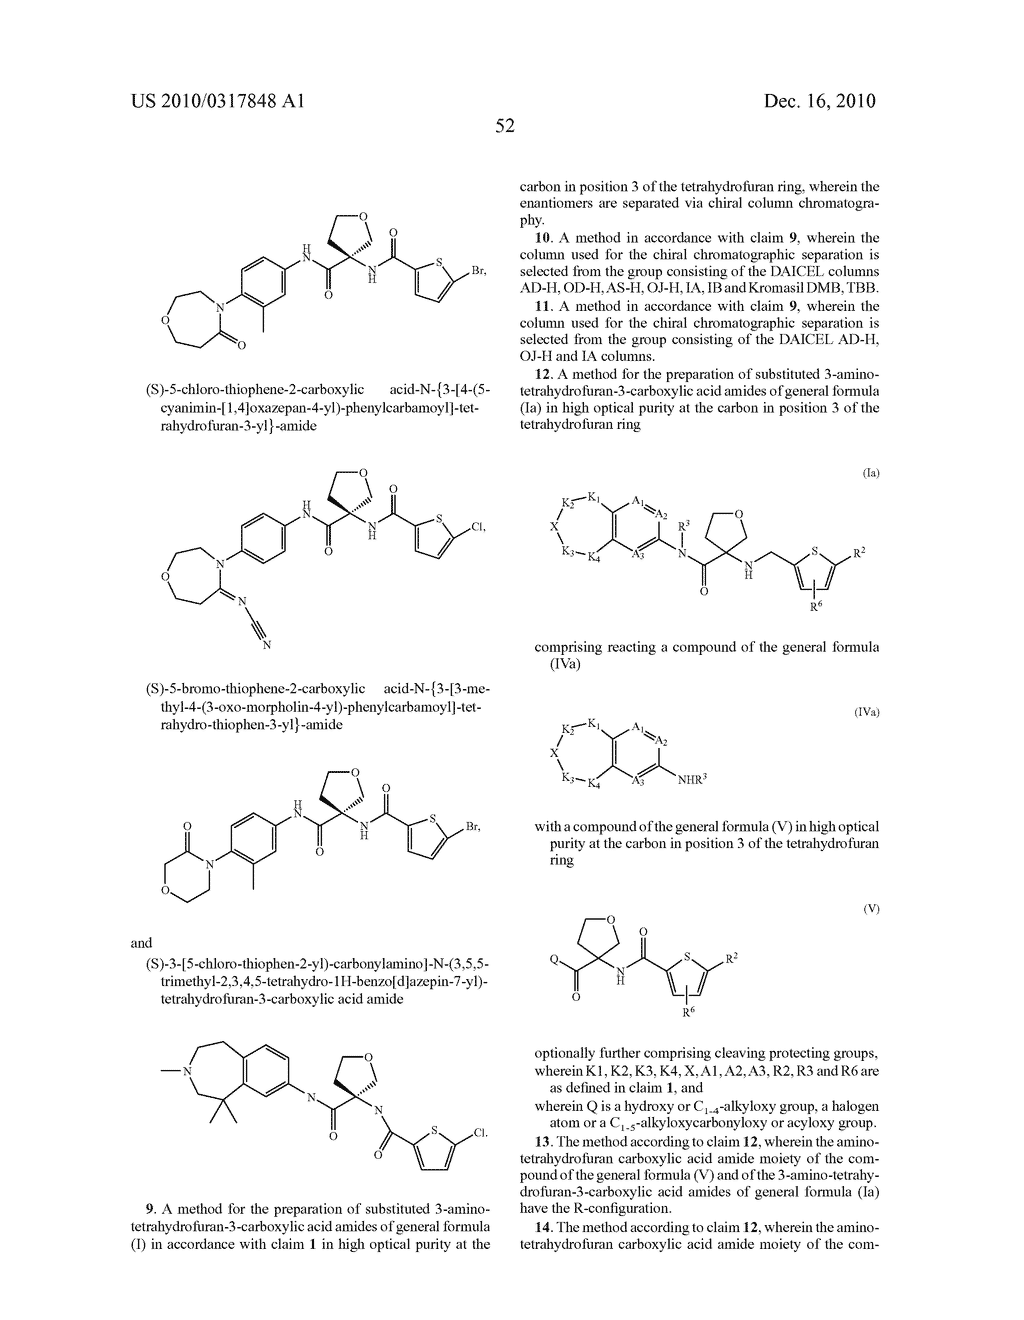 PROCESS FOR THE SYNTHESIS OF DERIVATIVES OF 3-AMINO-TETRAHYDROFURAN-3-CARBOXYLIC ACID AND USE THEREOF AS MEDICAMENTS - diagram, schematic, and image 57